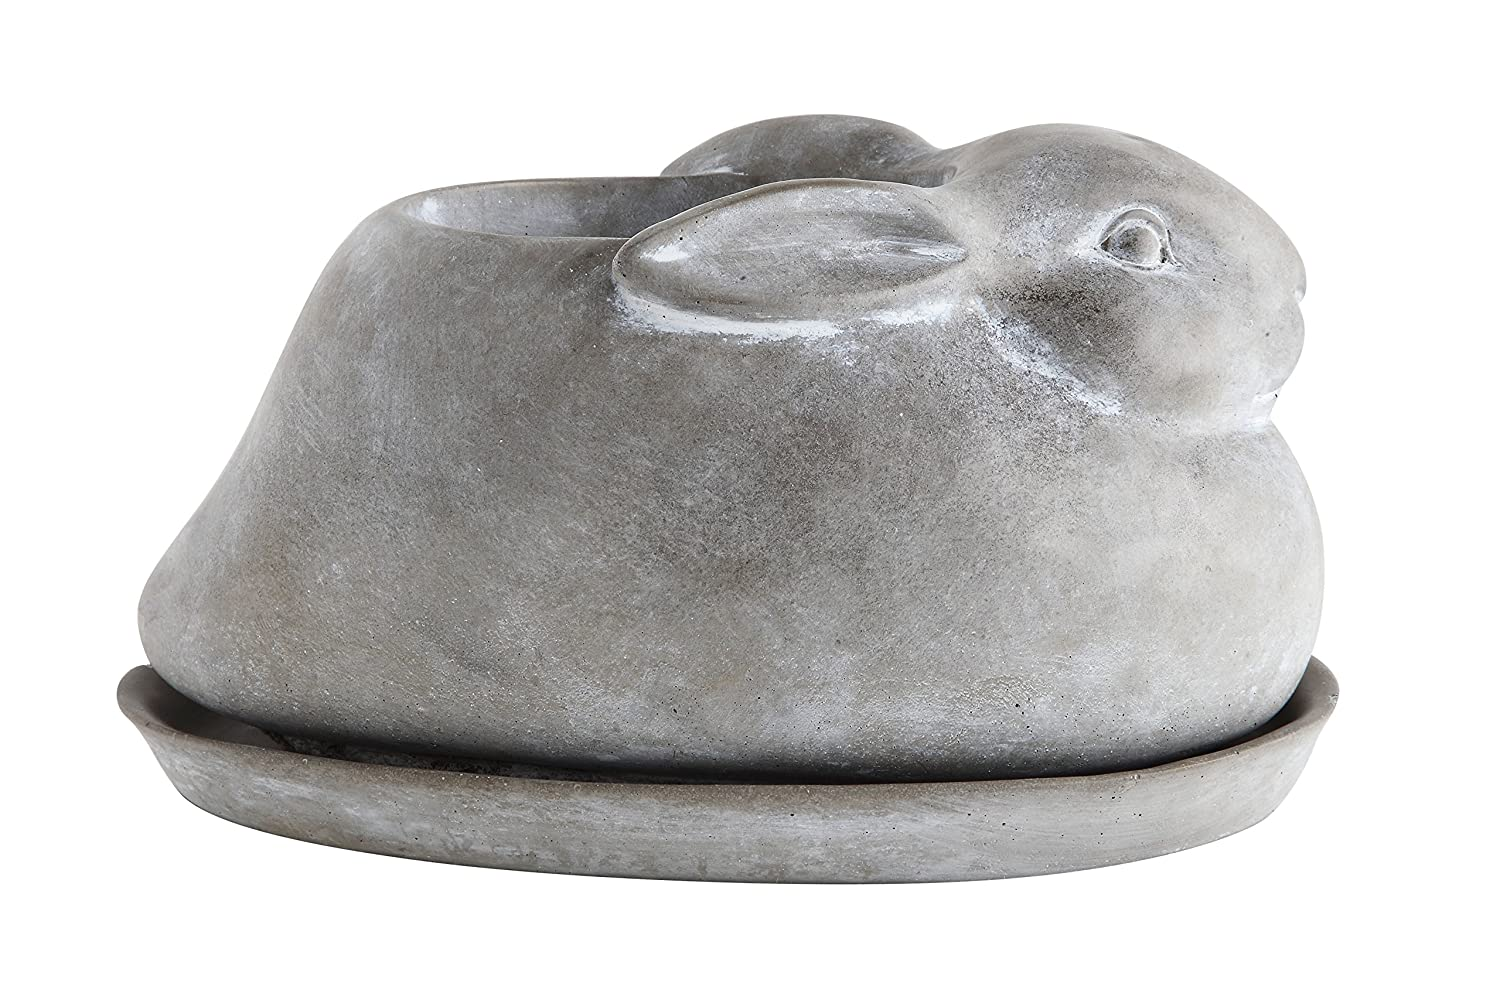 Creative Co-op Cement Rabbit Planter with Saucer Set of 2 Pieces